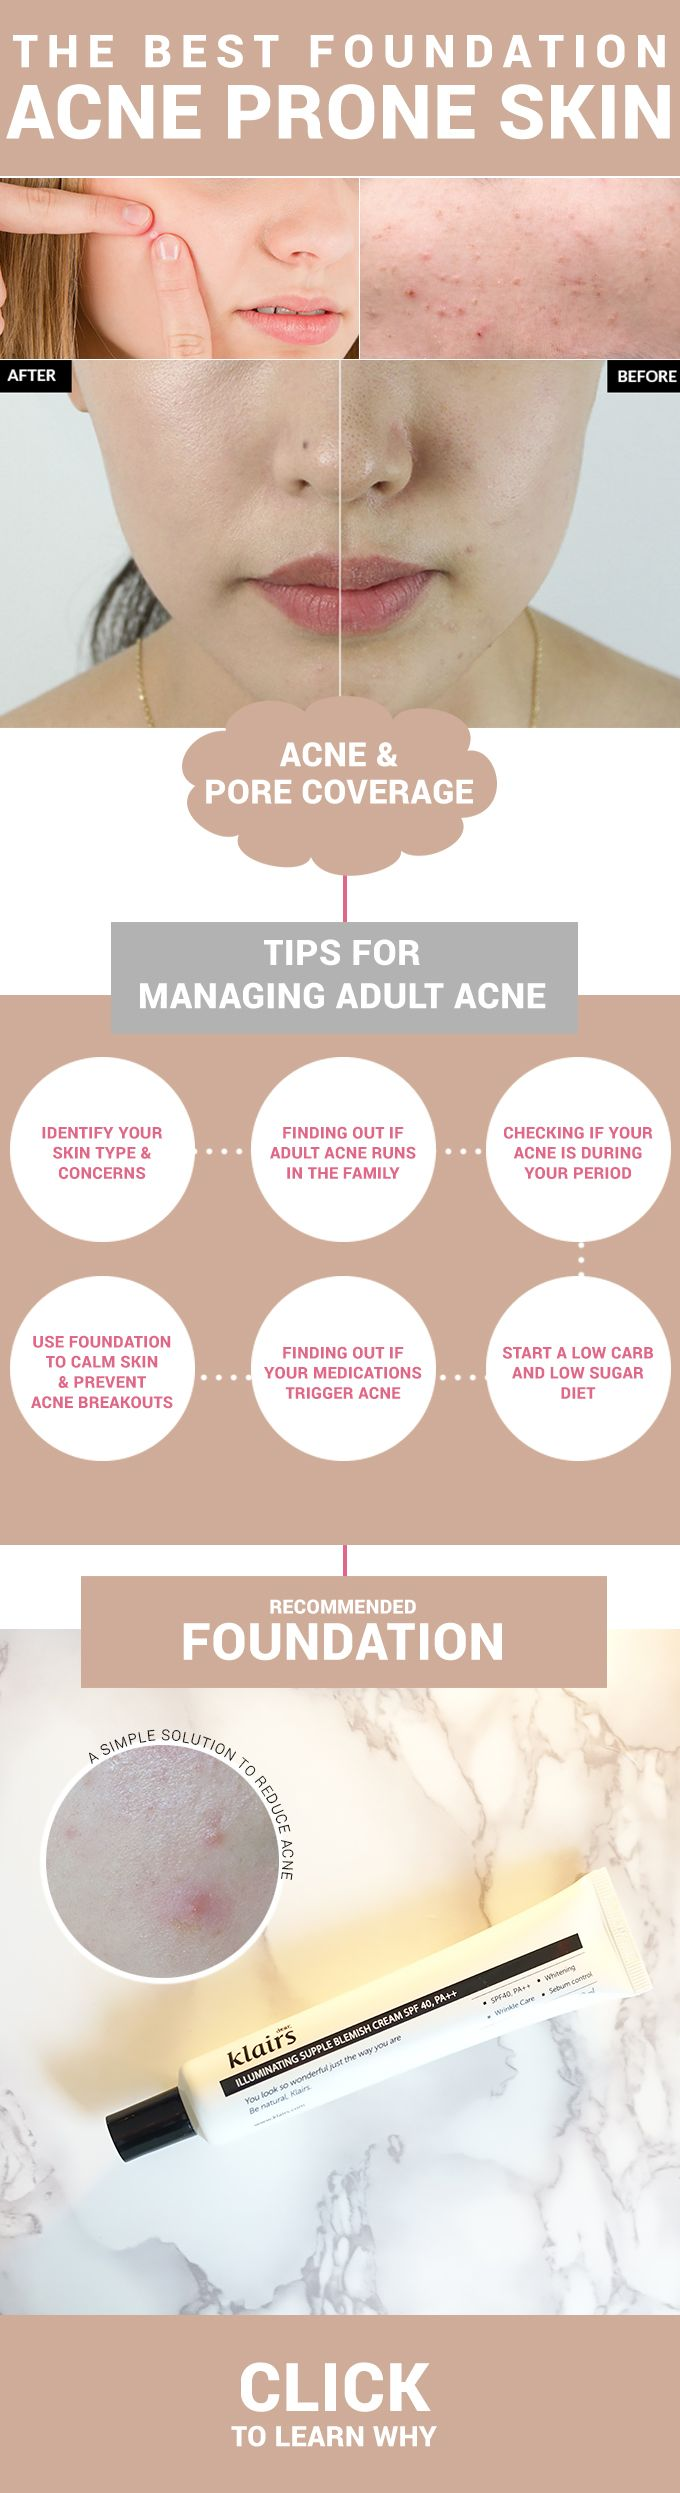 Having acne prone skin cna make finding makeup difficult. But finding the right makeup can actually heal acne! Find out how and why with our recommendation!  http://www.wishtrendglam.com/the-best-foundation-for-acne-prone-skin/  #foundation #routine #makeup #bbcream #klairs #tips #tricks #acne #pimples #acneprone #skin #pores #adultacne